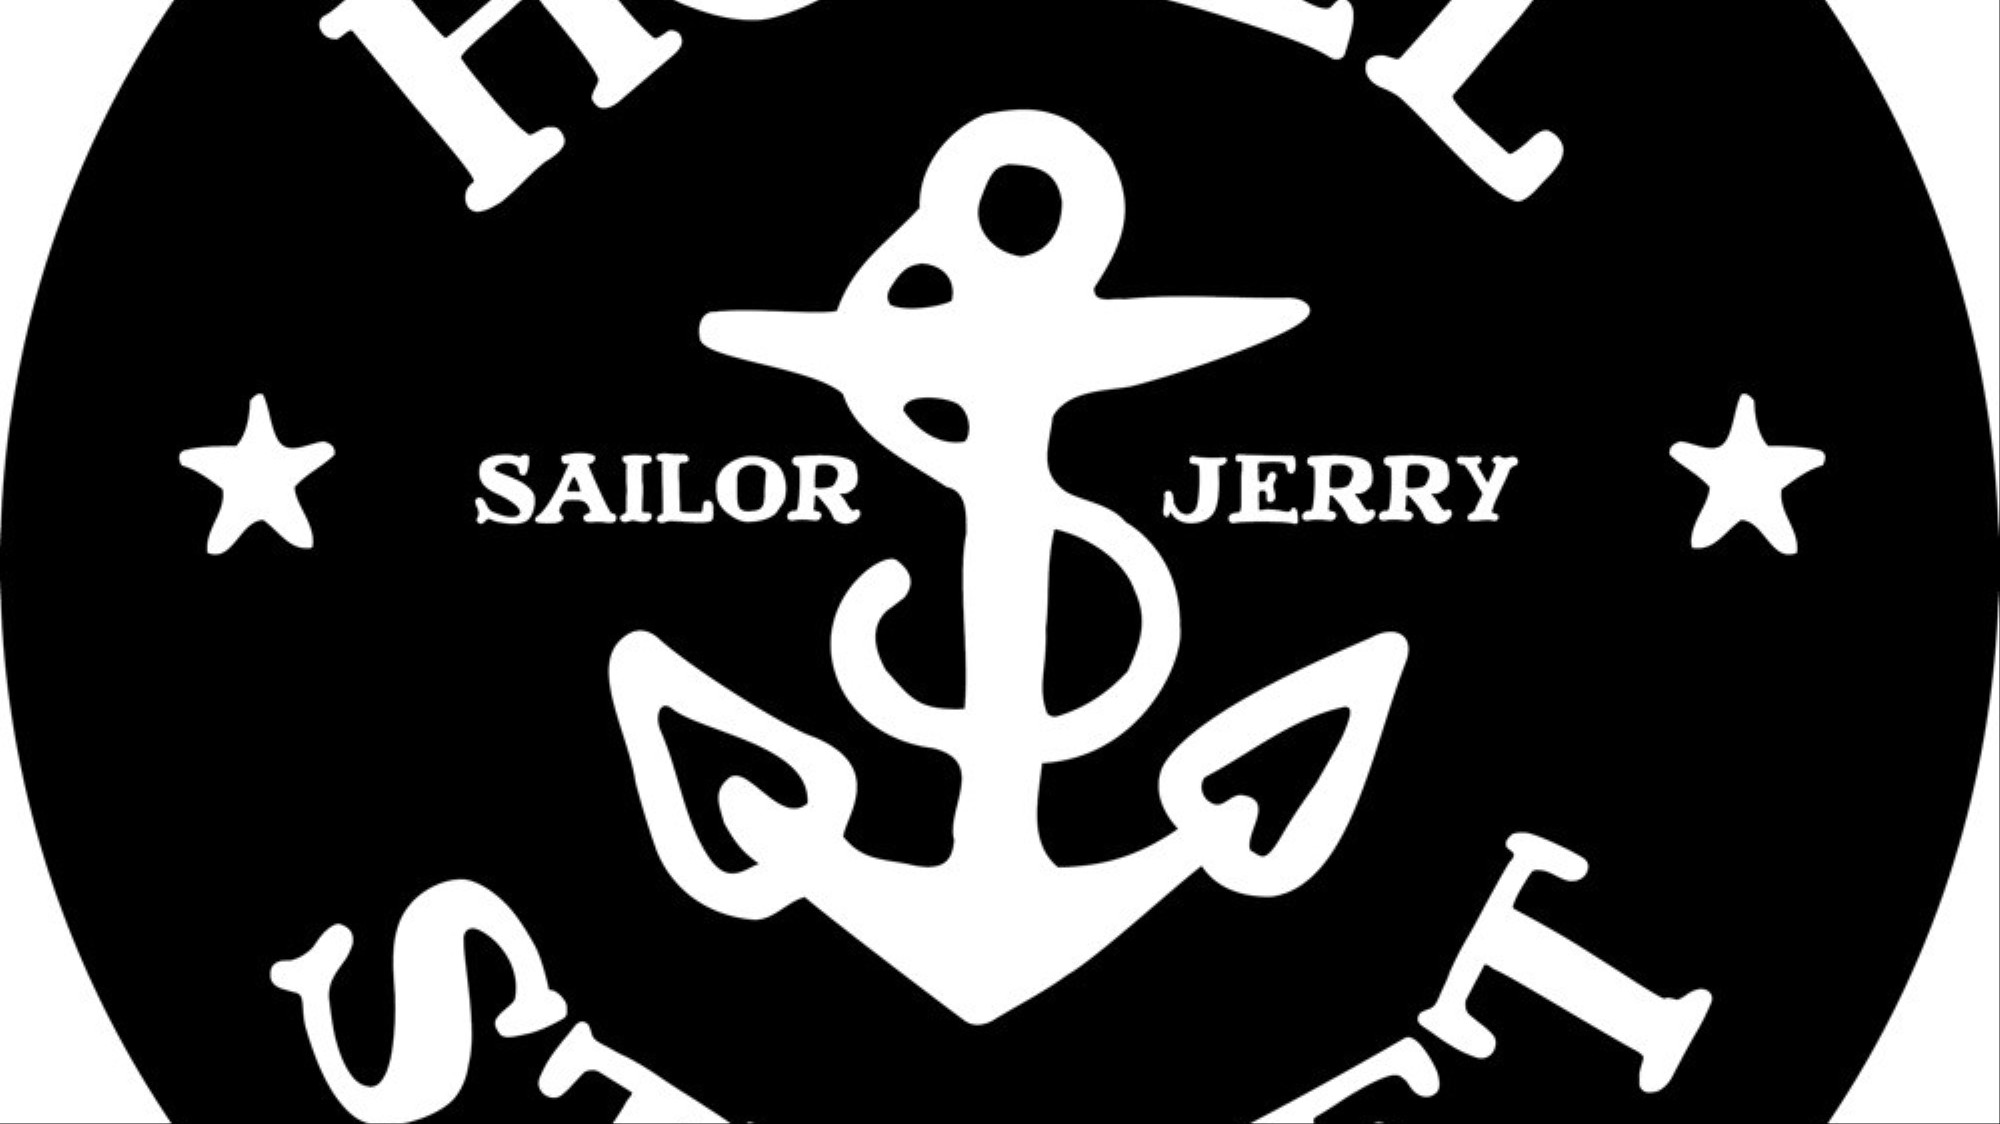 Pay your respects to Norman \'Sailor Jerry\' Collins at Hotel.